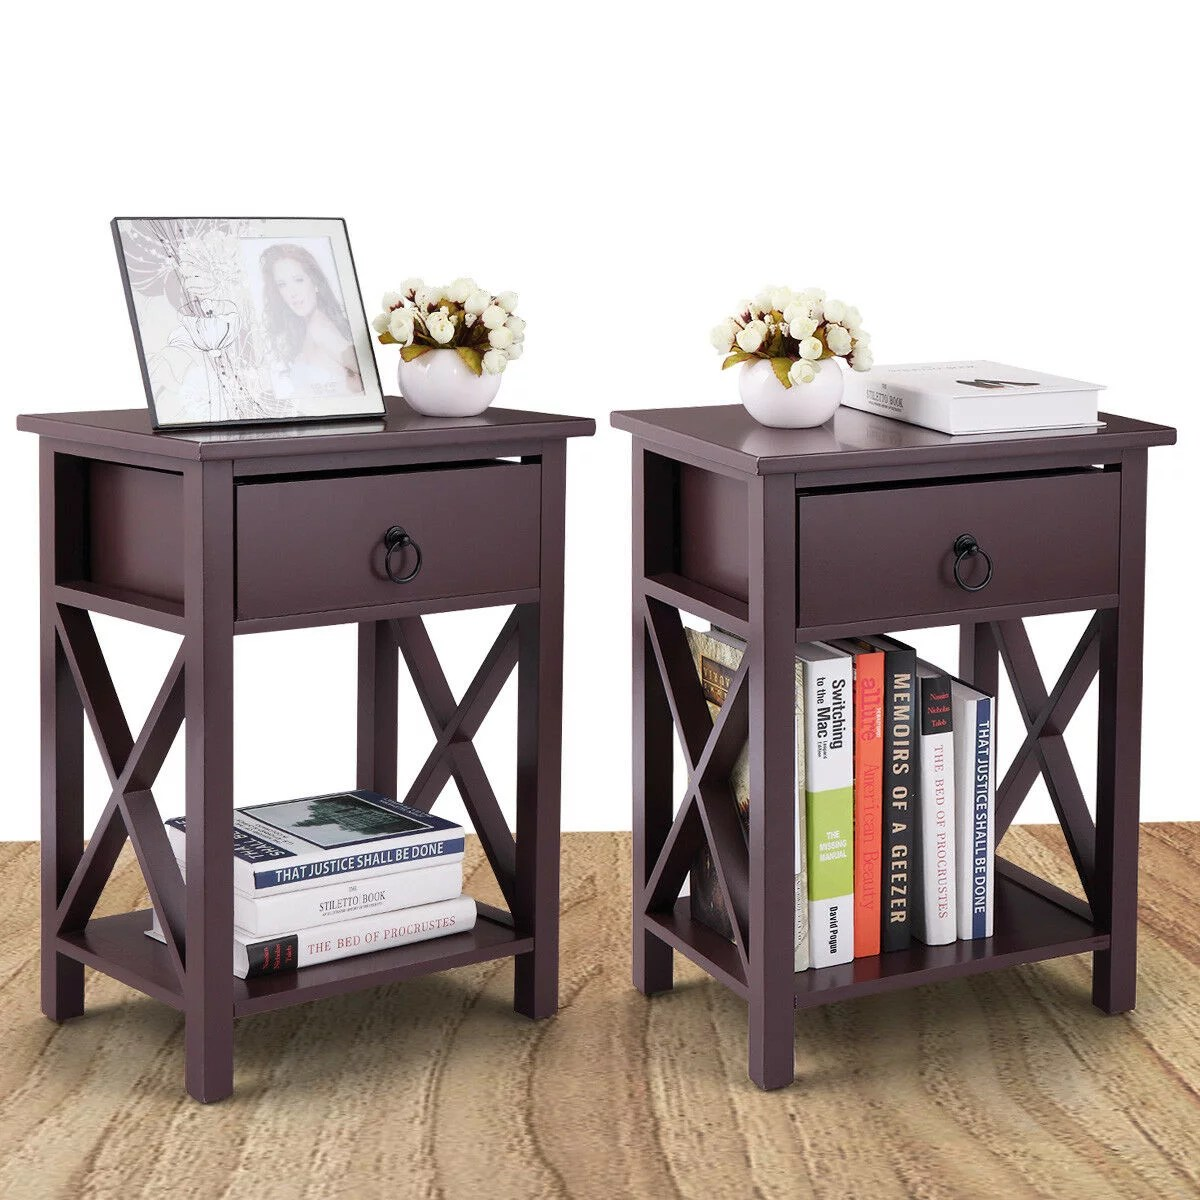 Topcobe Night Stand Set Of 2 Nightstand Organizer W Storage Drawer End Table Storage Cabinet For Bedroom Living Room Dining Room Furniture Brown